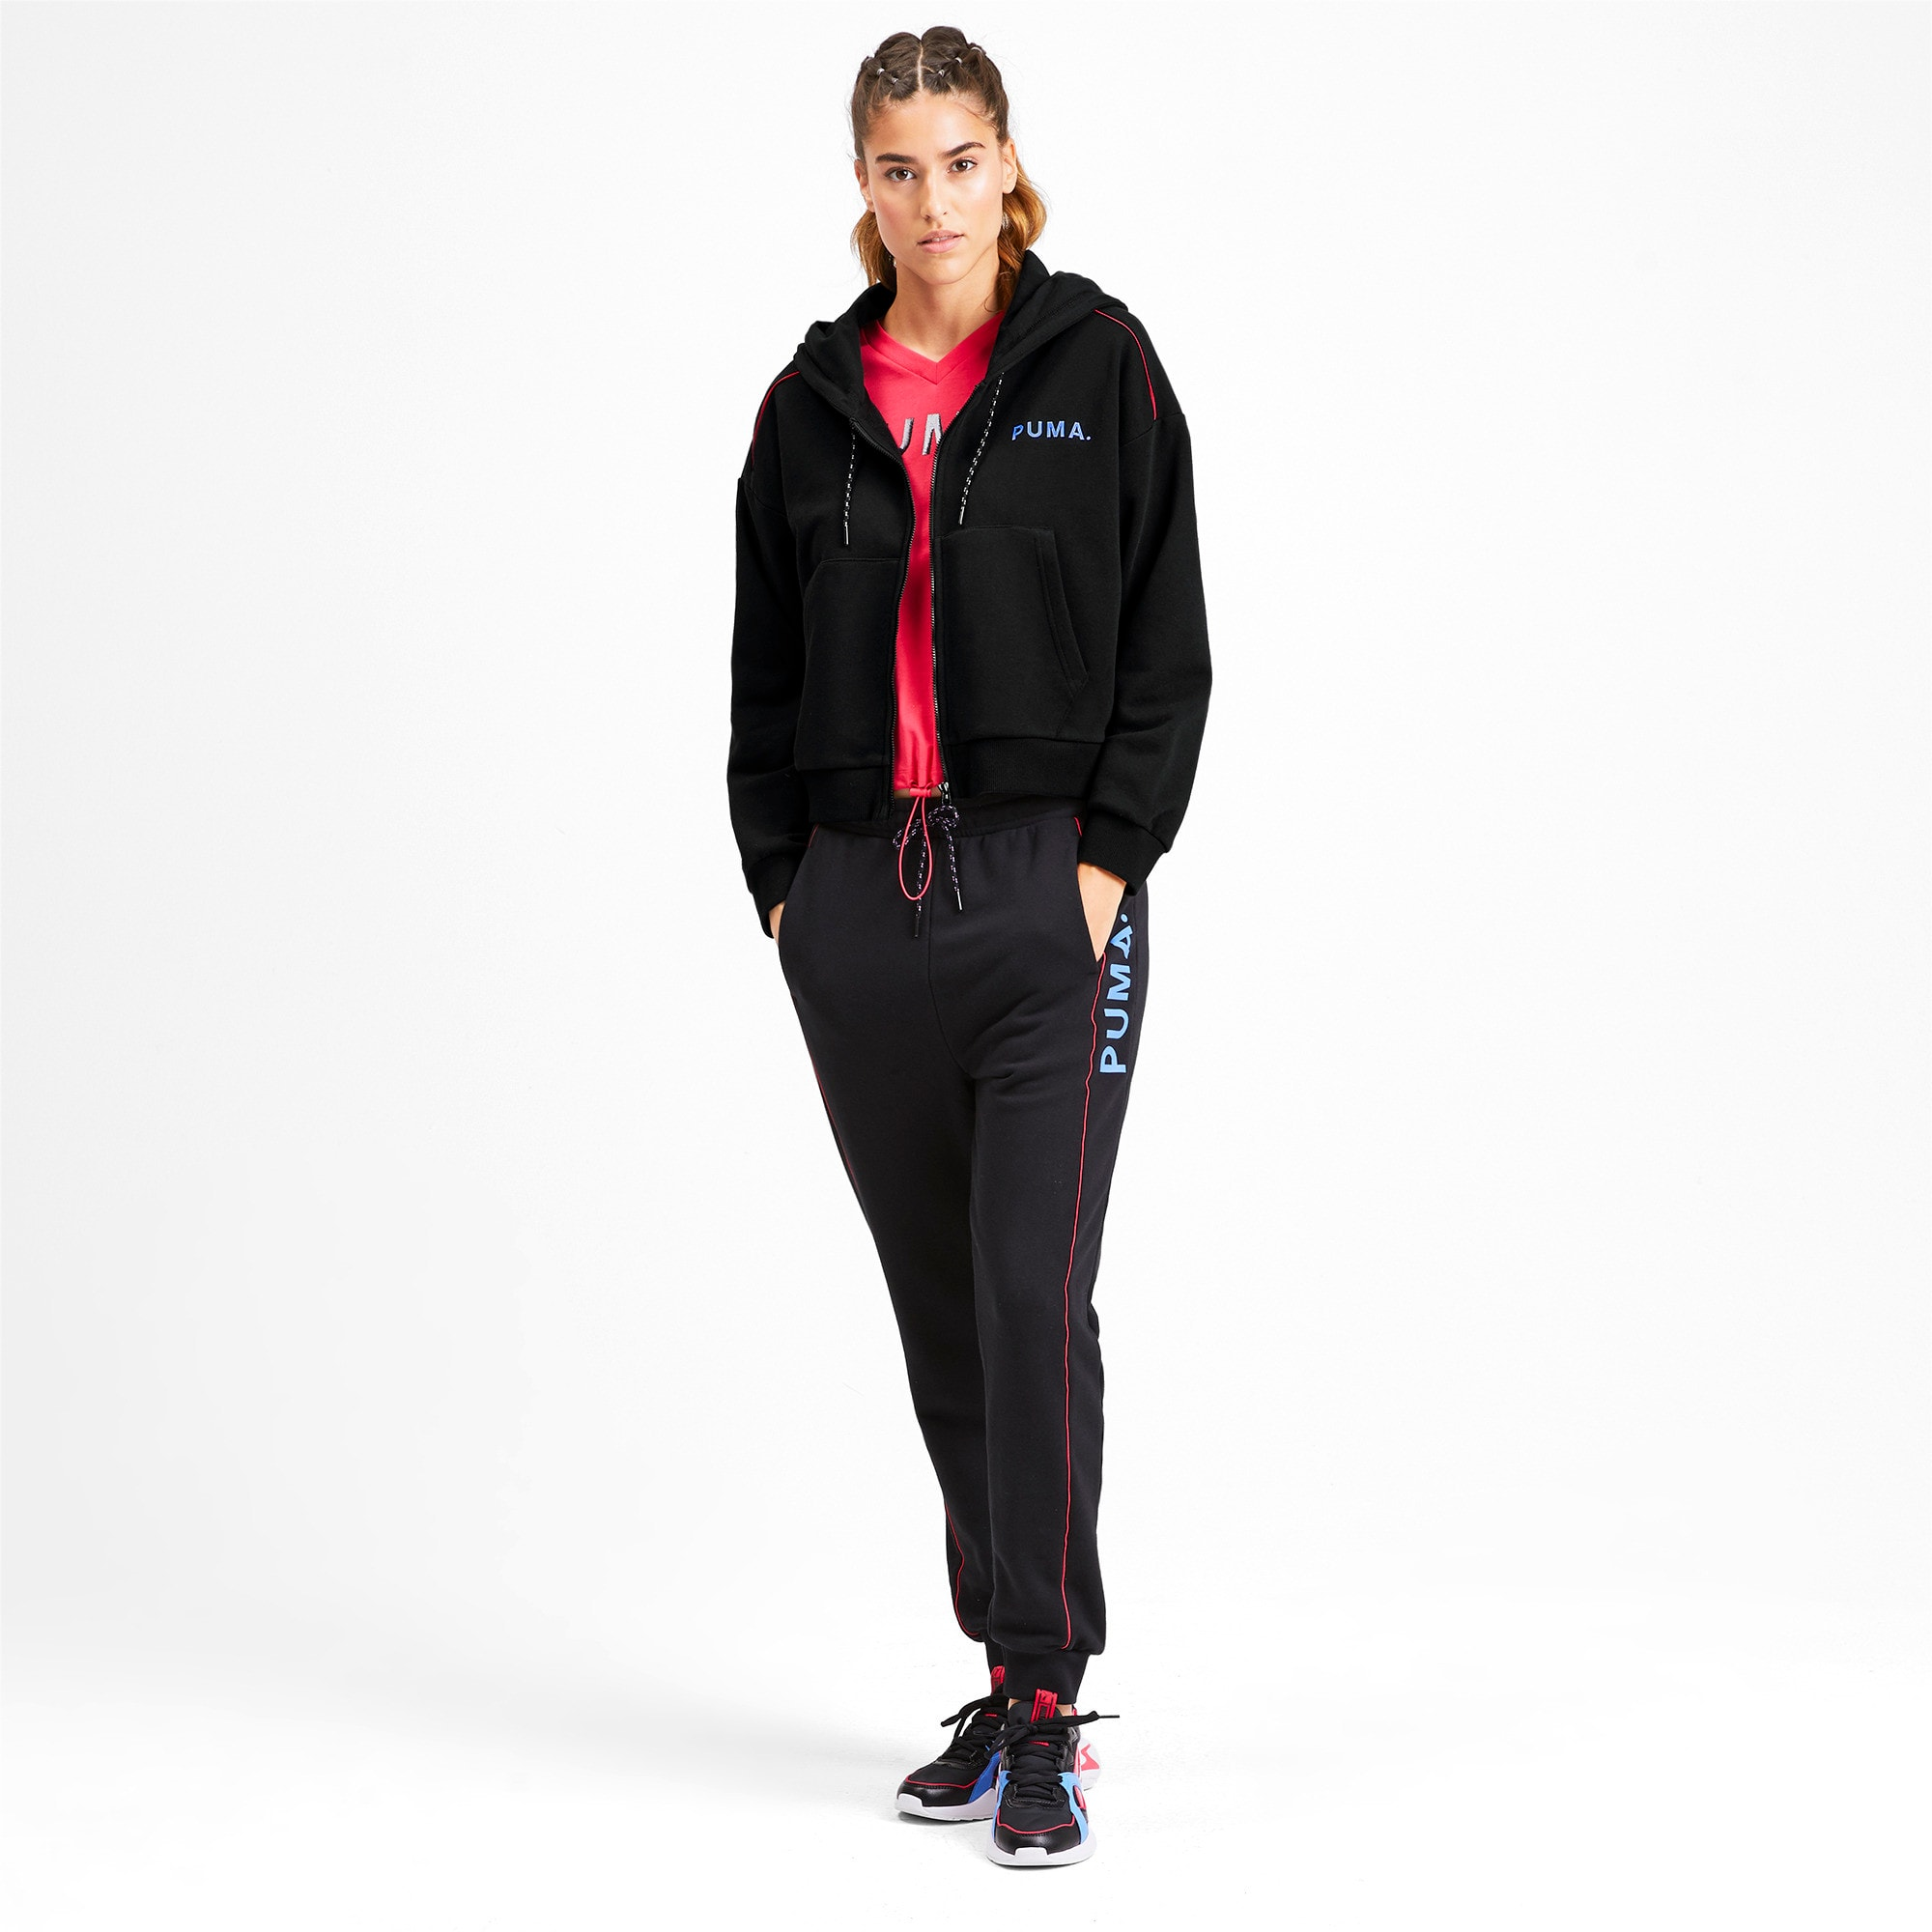 Chase Cropped Full Zip Women's Hoodie, Puma Black, large